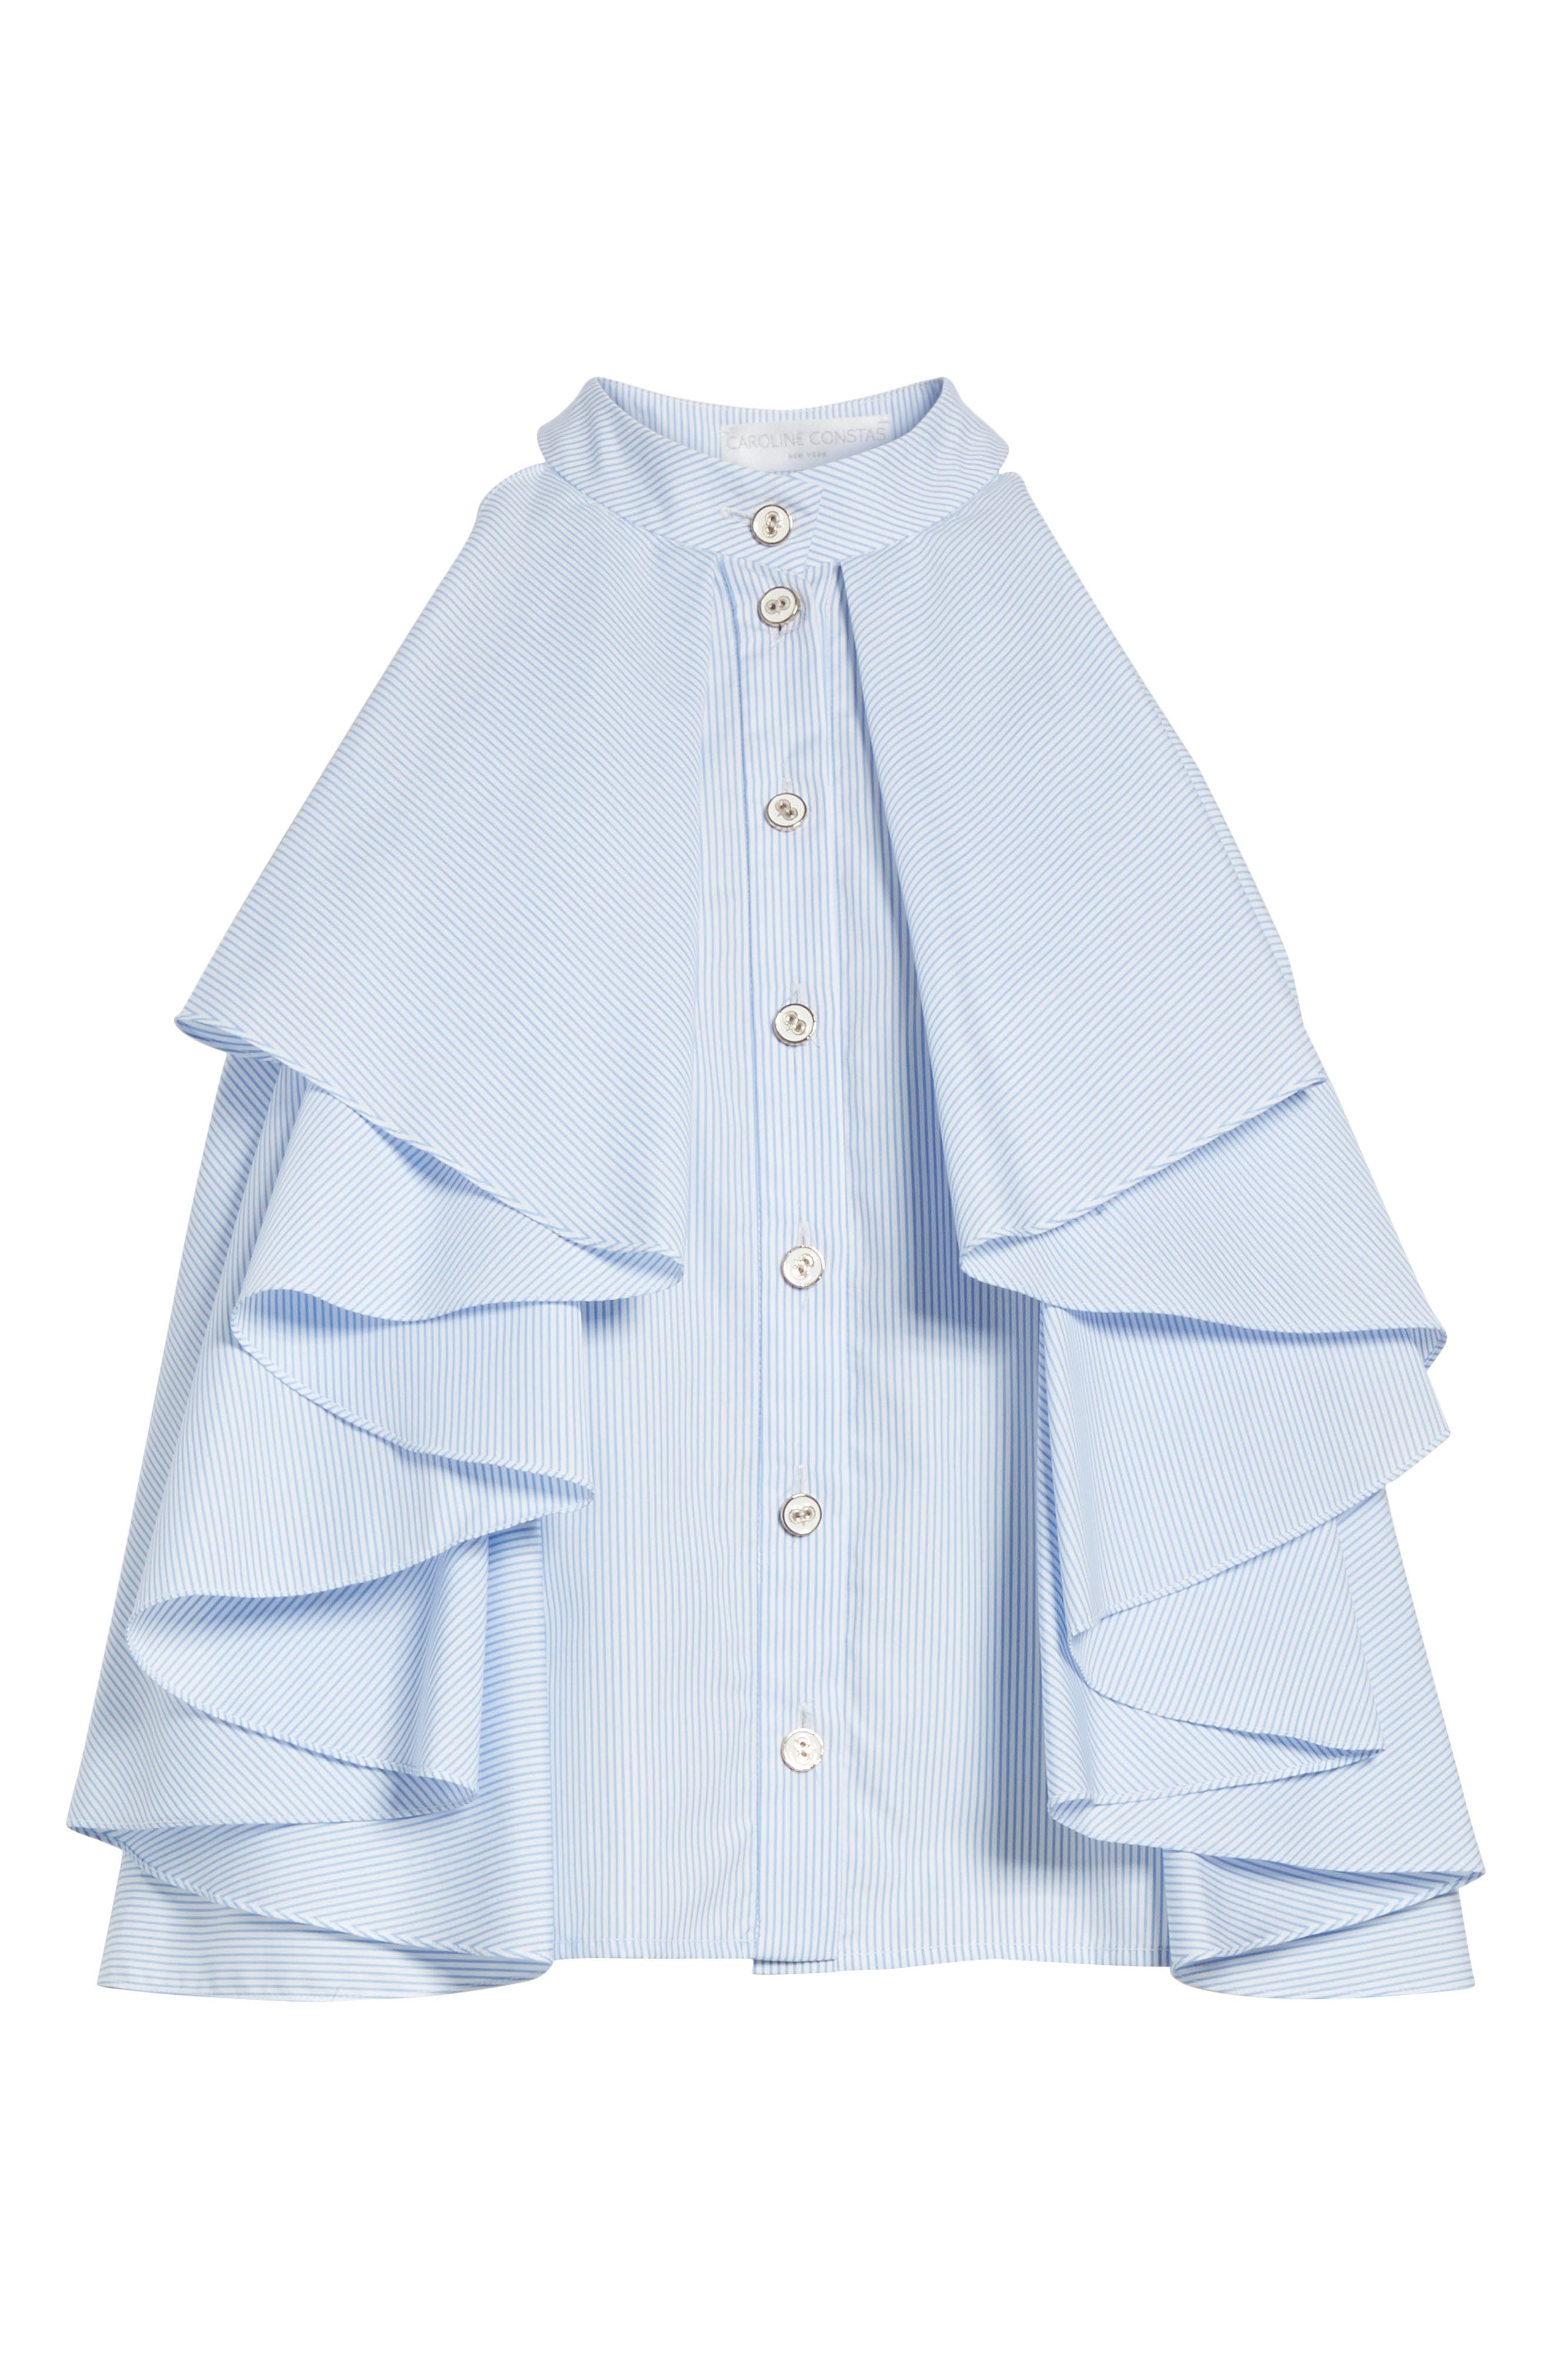 Adrie Ruffle Blouse,                             Alternate thumbnail 6, color,                             455